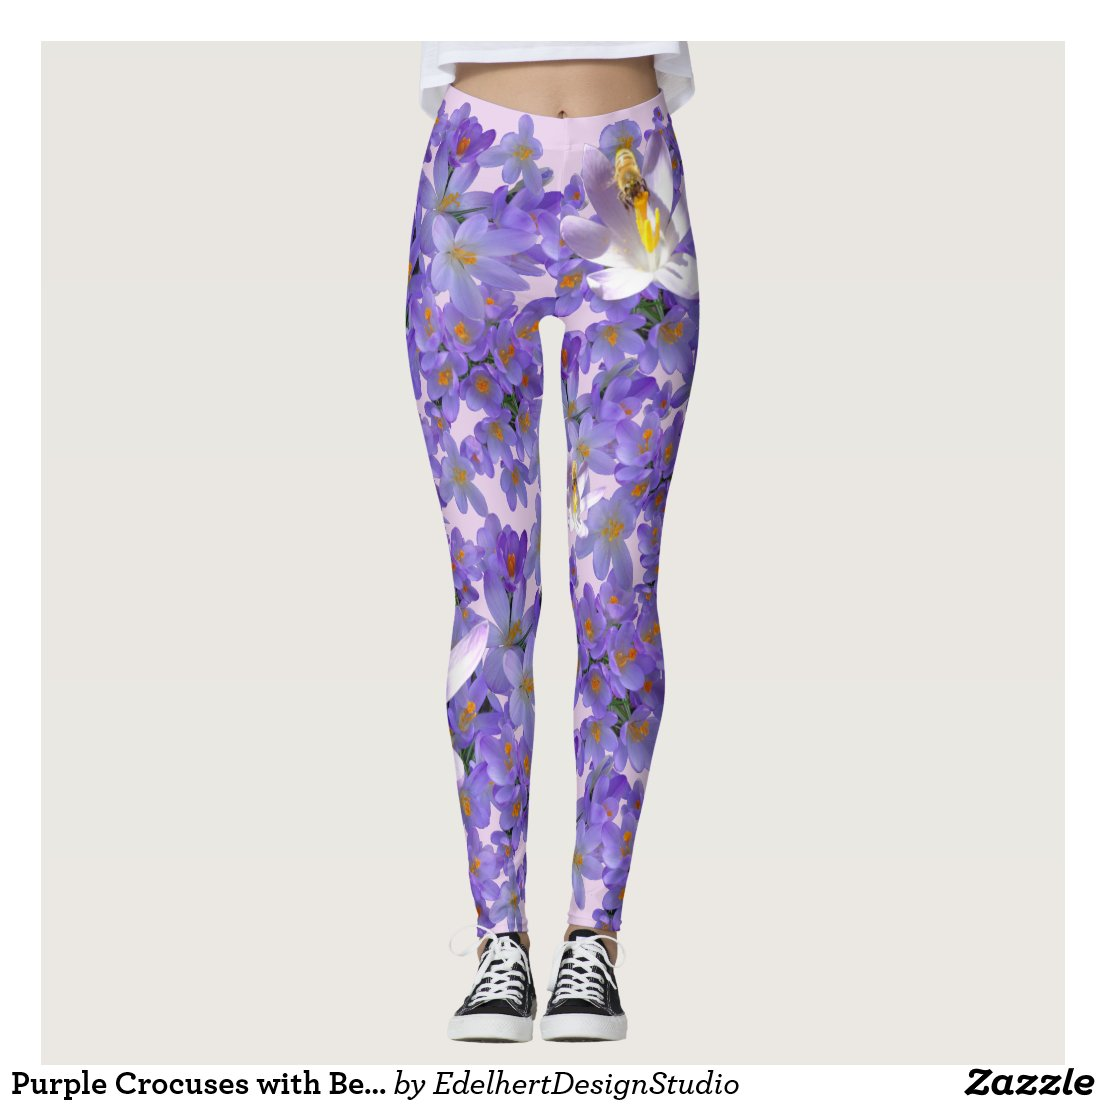 Purple Crocuses with Bees Legging